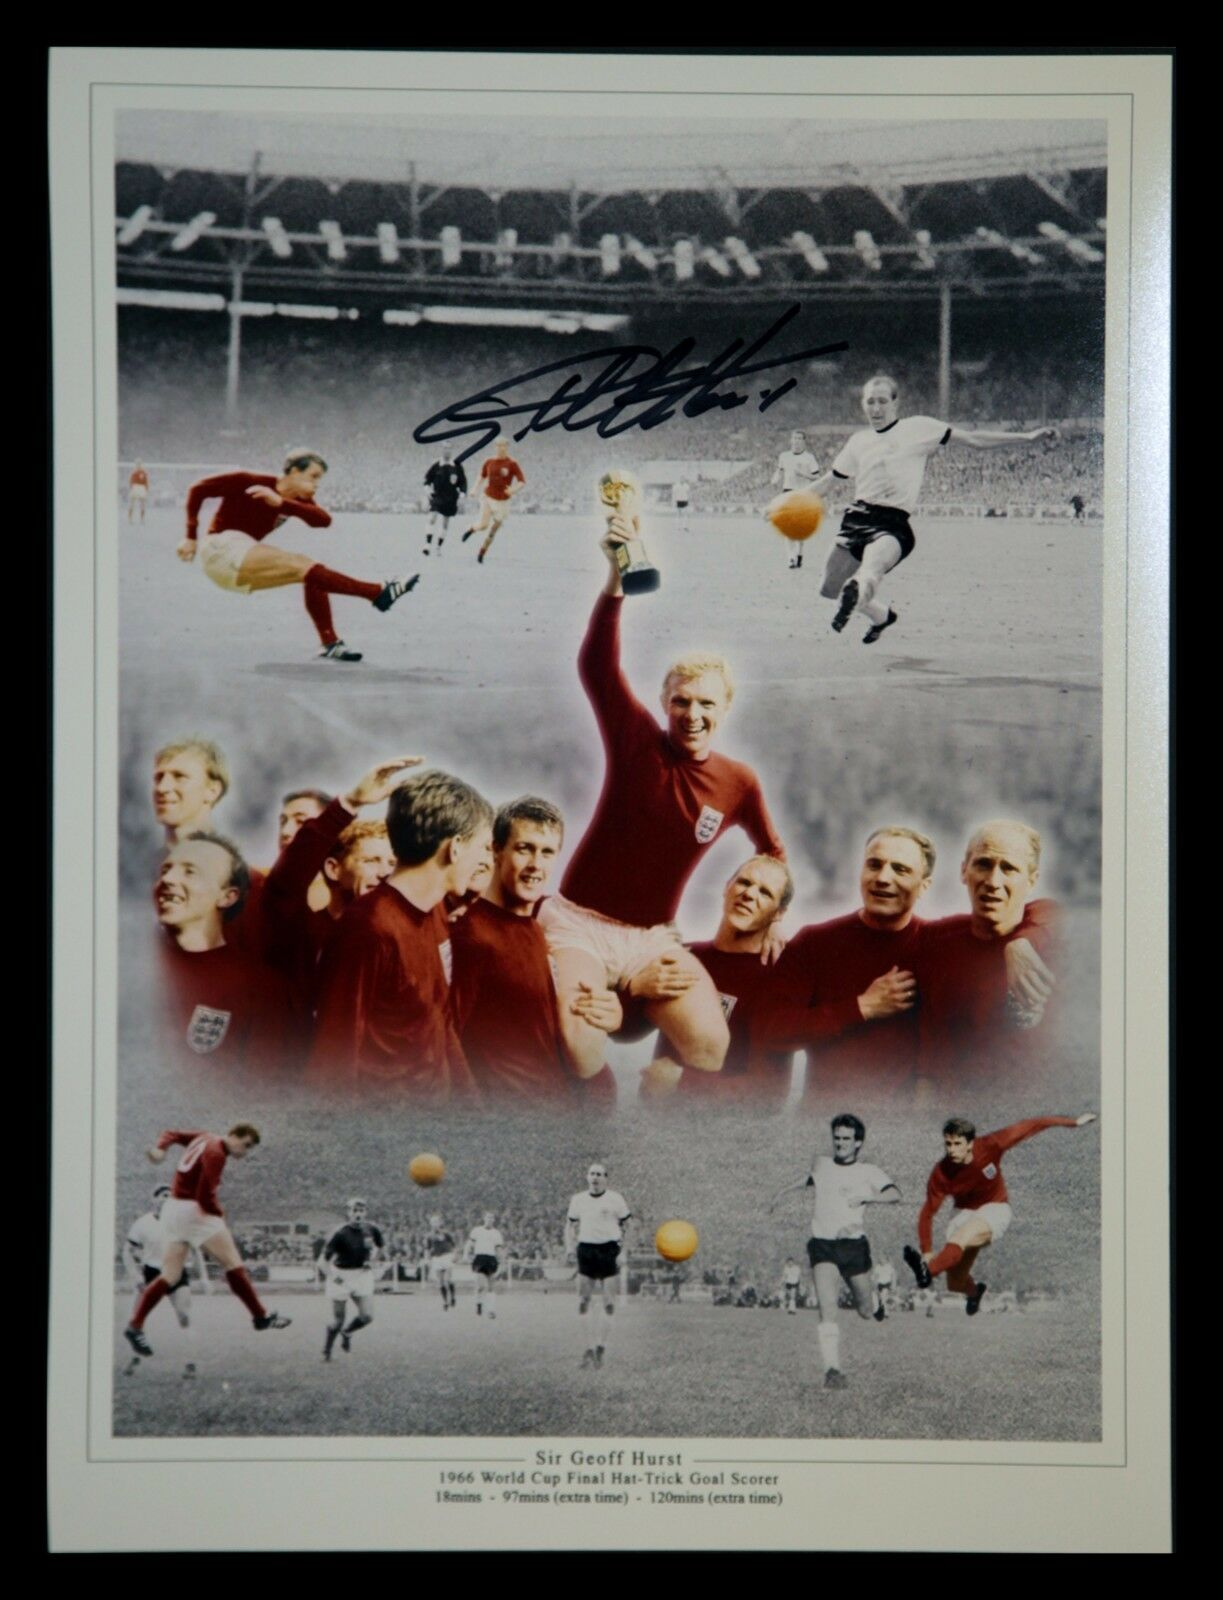 Geoff Hurst Signed Unframed 1966 Photo with COA - Extra Large!